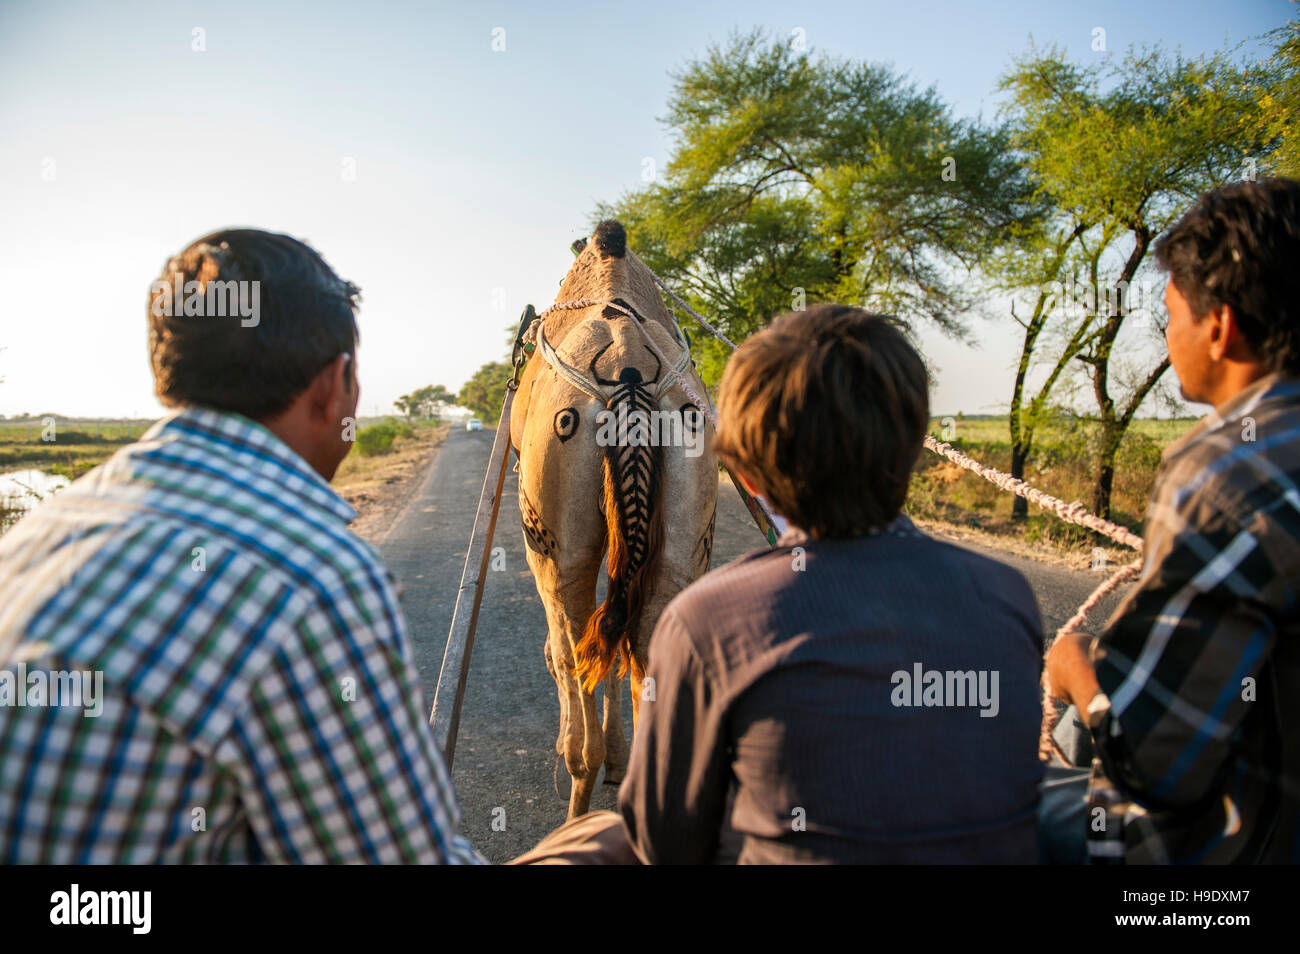 On a camel drawn cart near Dasada, a small town on the edge of the Little Raan of Kutch. - Stock Image